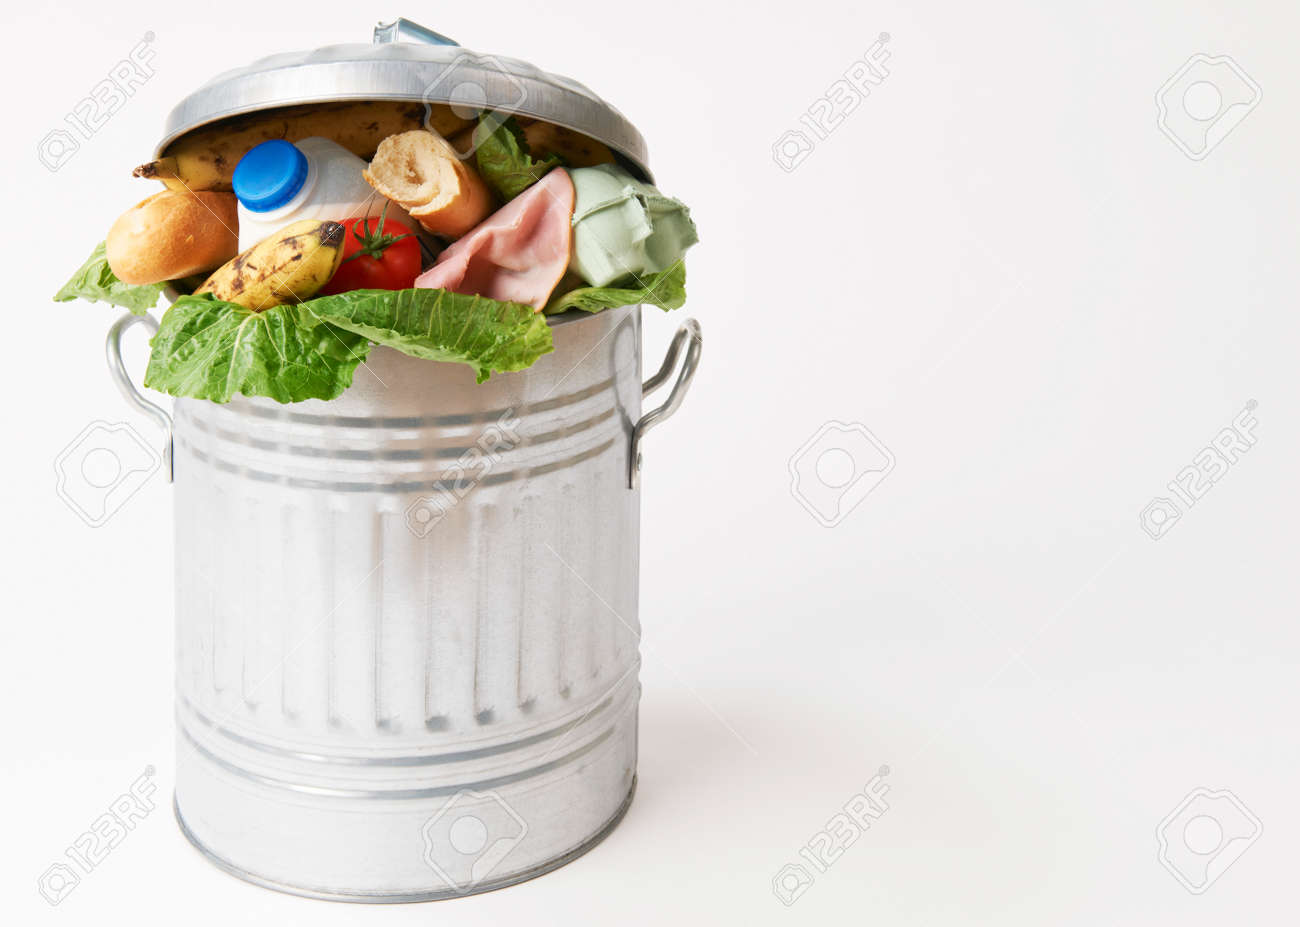 Fresh Food In Garbage Can To Illustrate Waste Stock Photo - 49371532